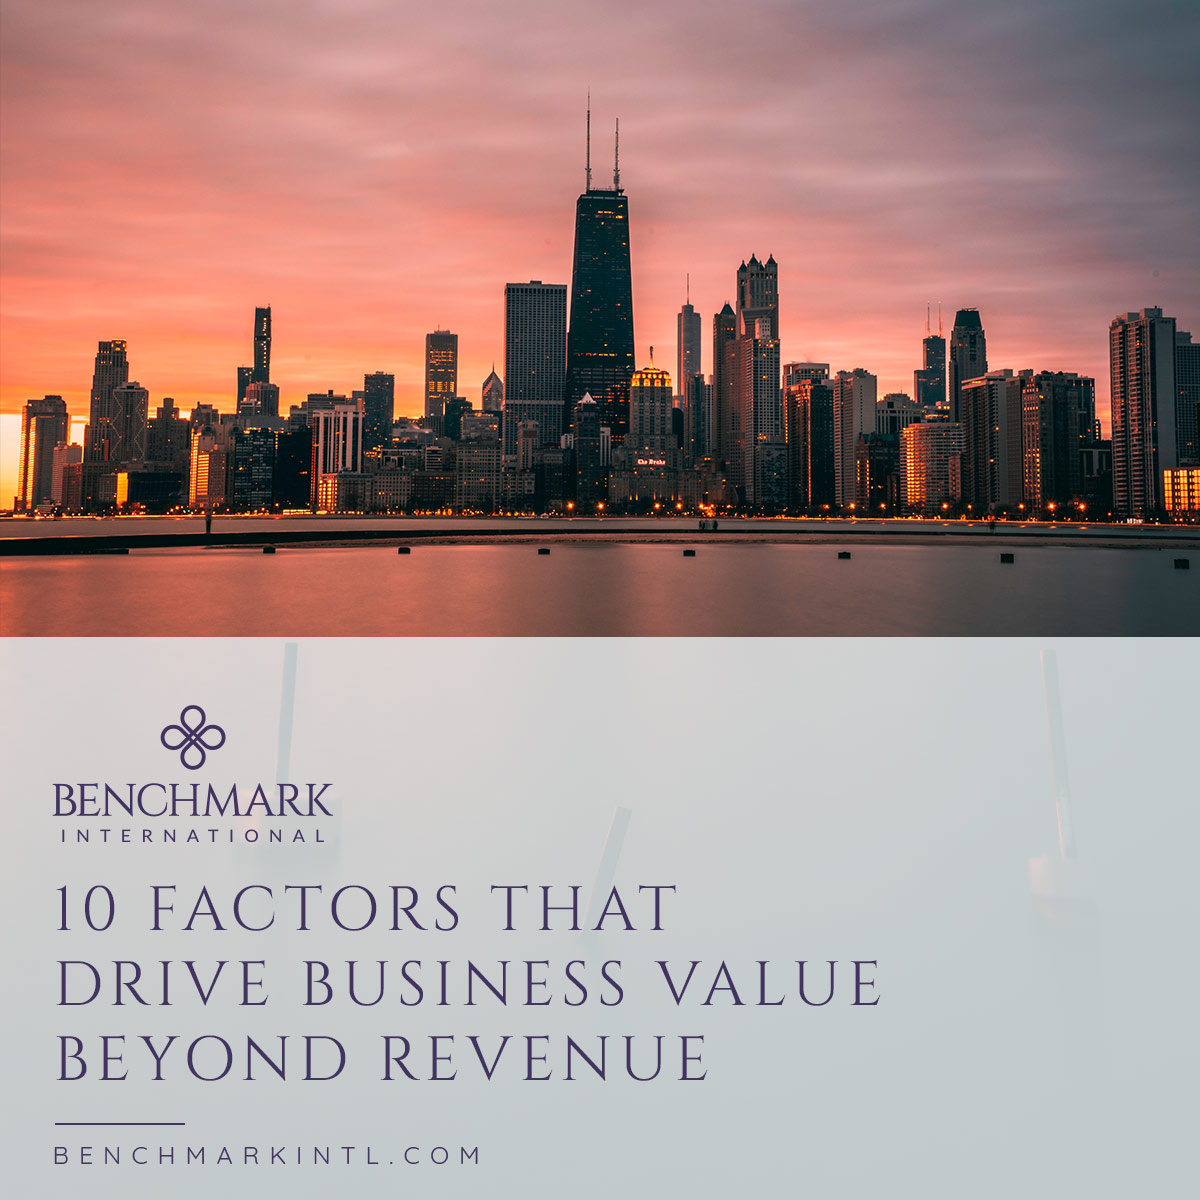 10_Factors_That_Drive_Business_Value_Beyond_Revenue_Social(3)